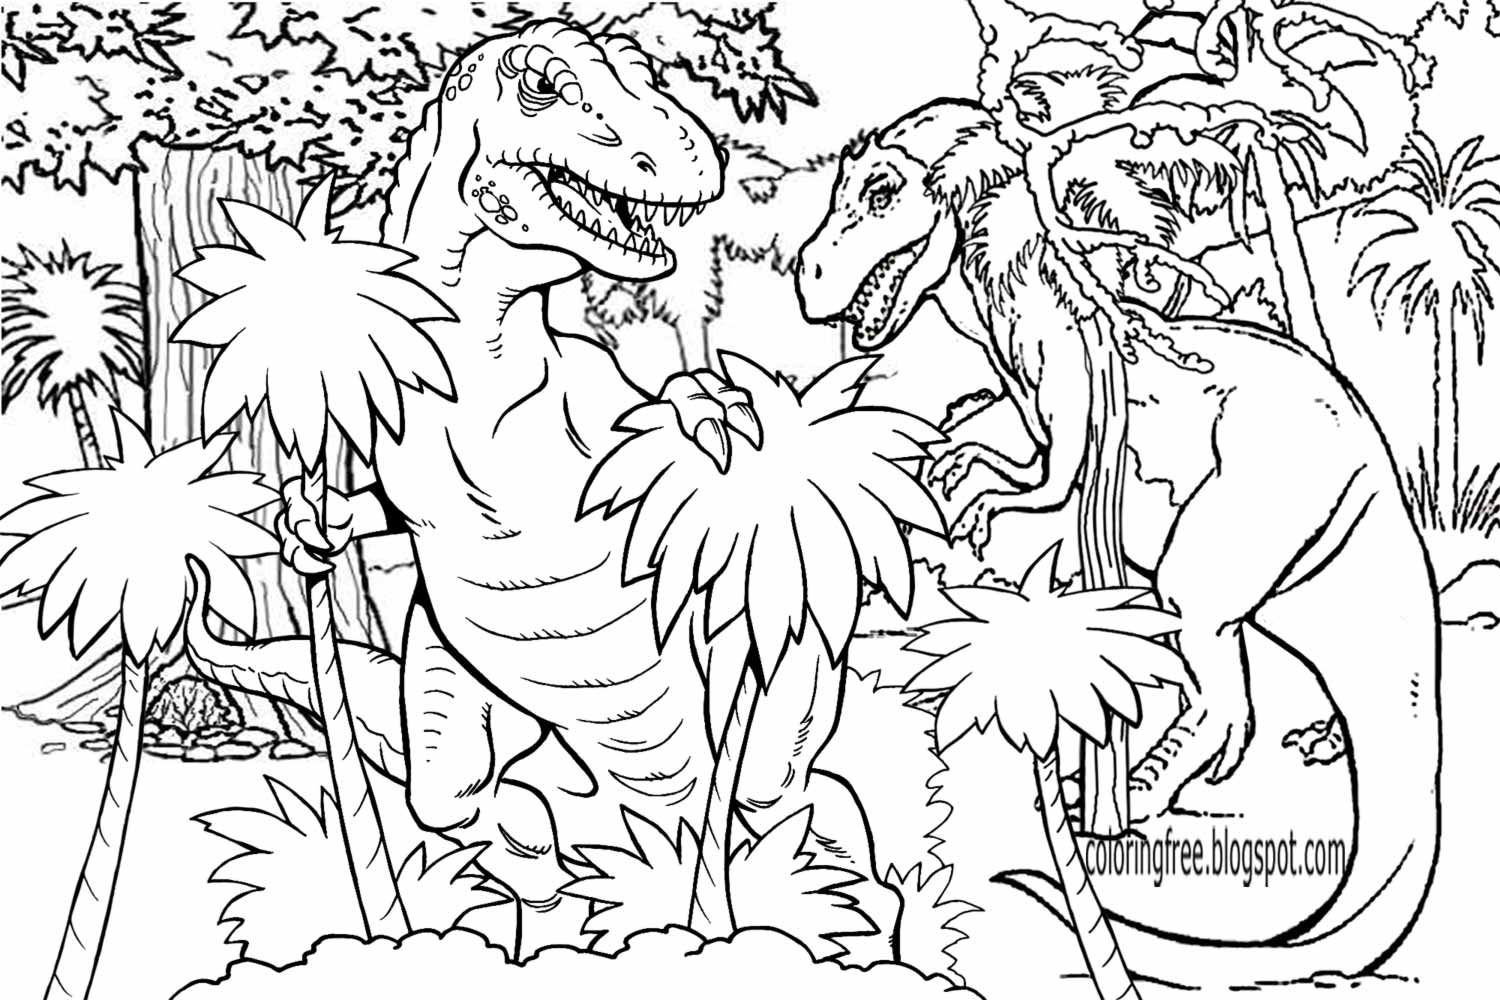 dino coloring page free coloring pages dinosaur coloring pages dino page coloring